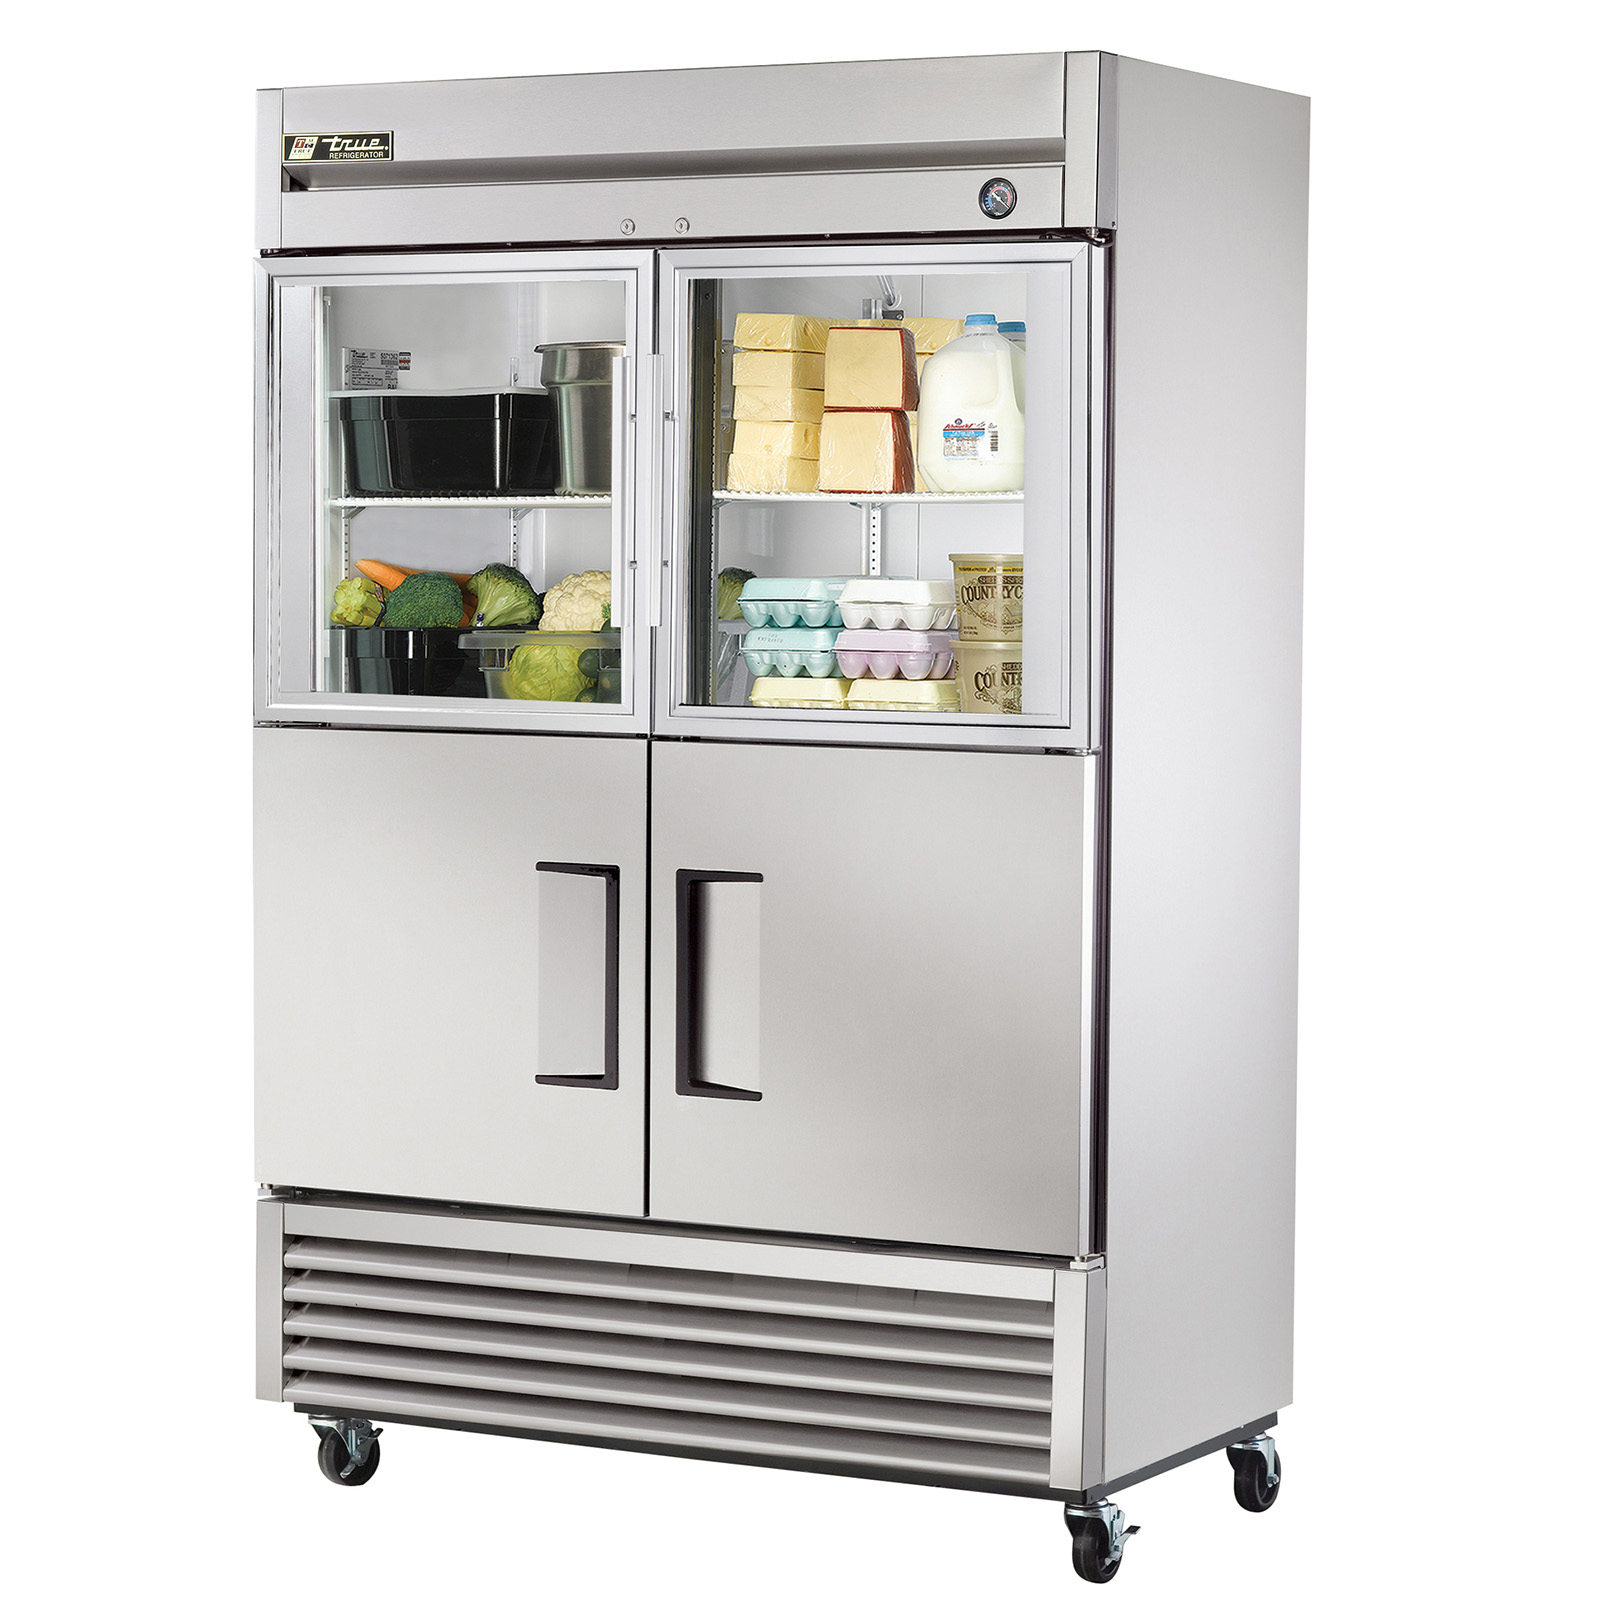 Restaurant Kitchen Refrigerator t-49-2-g-2 true - refrigerator reach-in